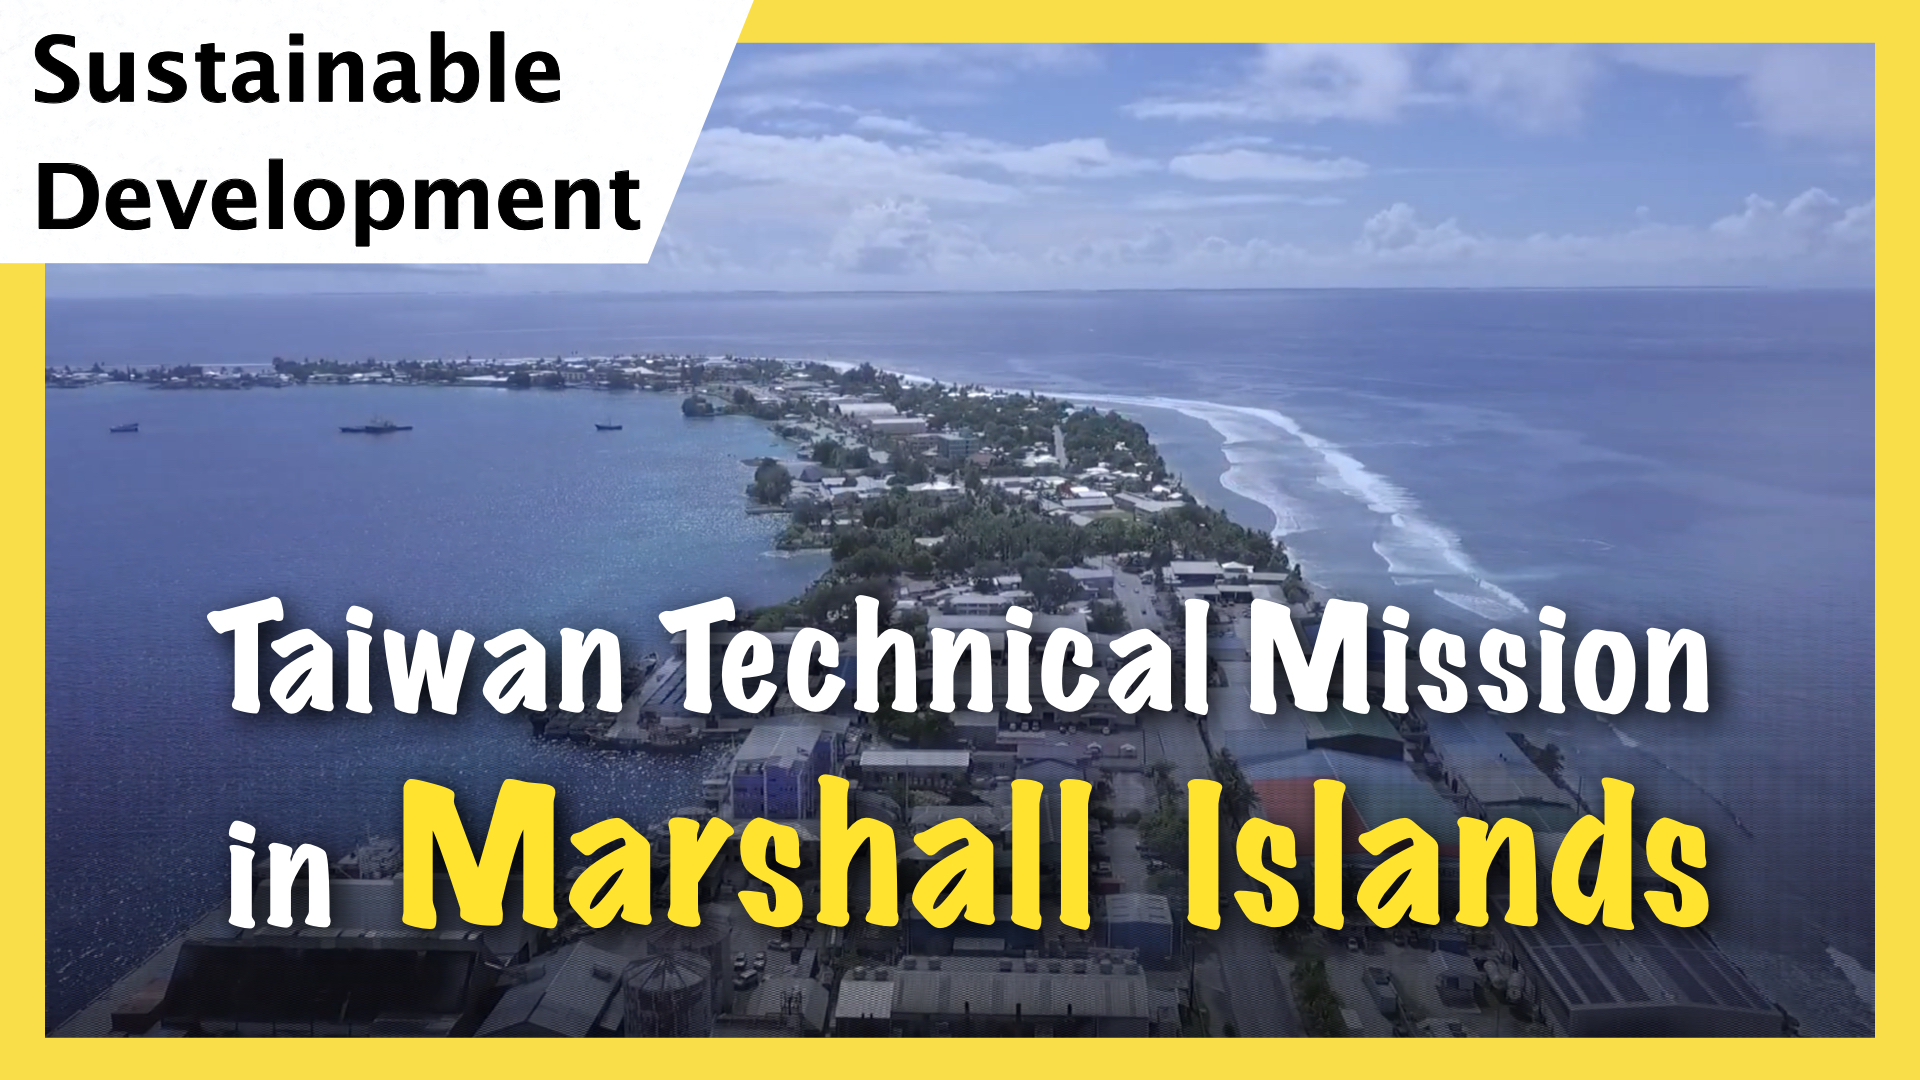 Taiwan Technical Mission in Marshall Islands